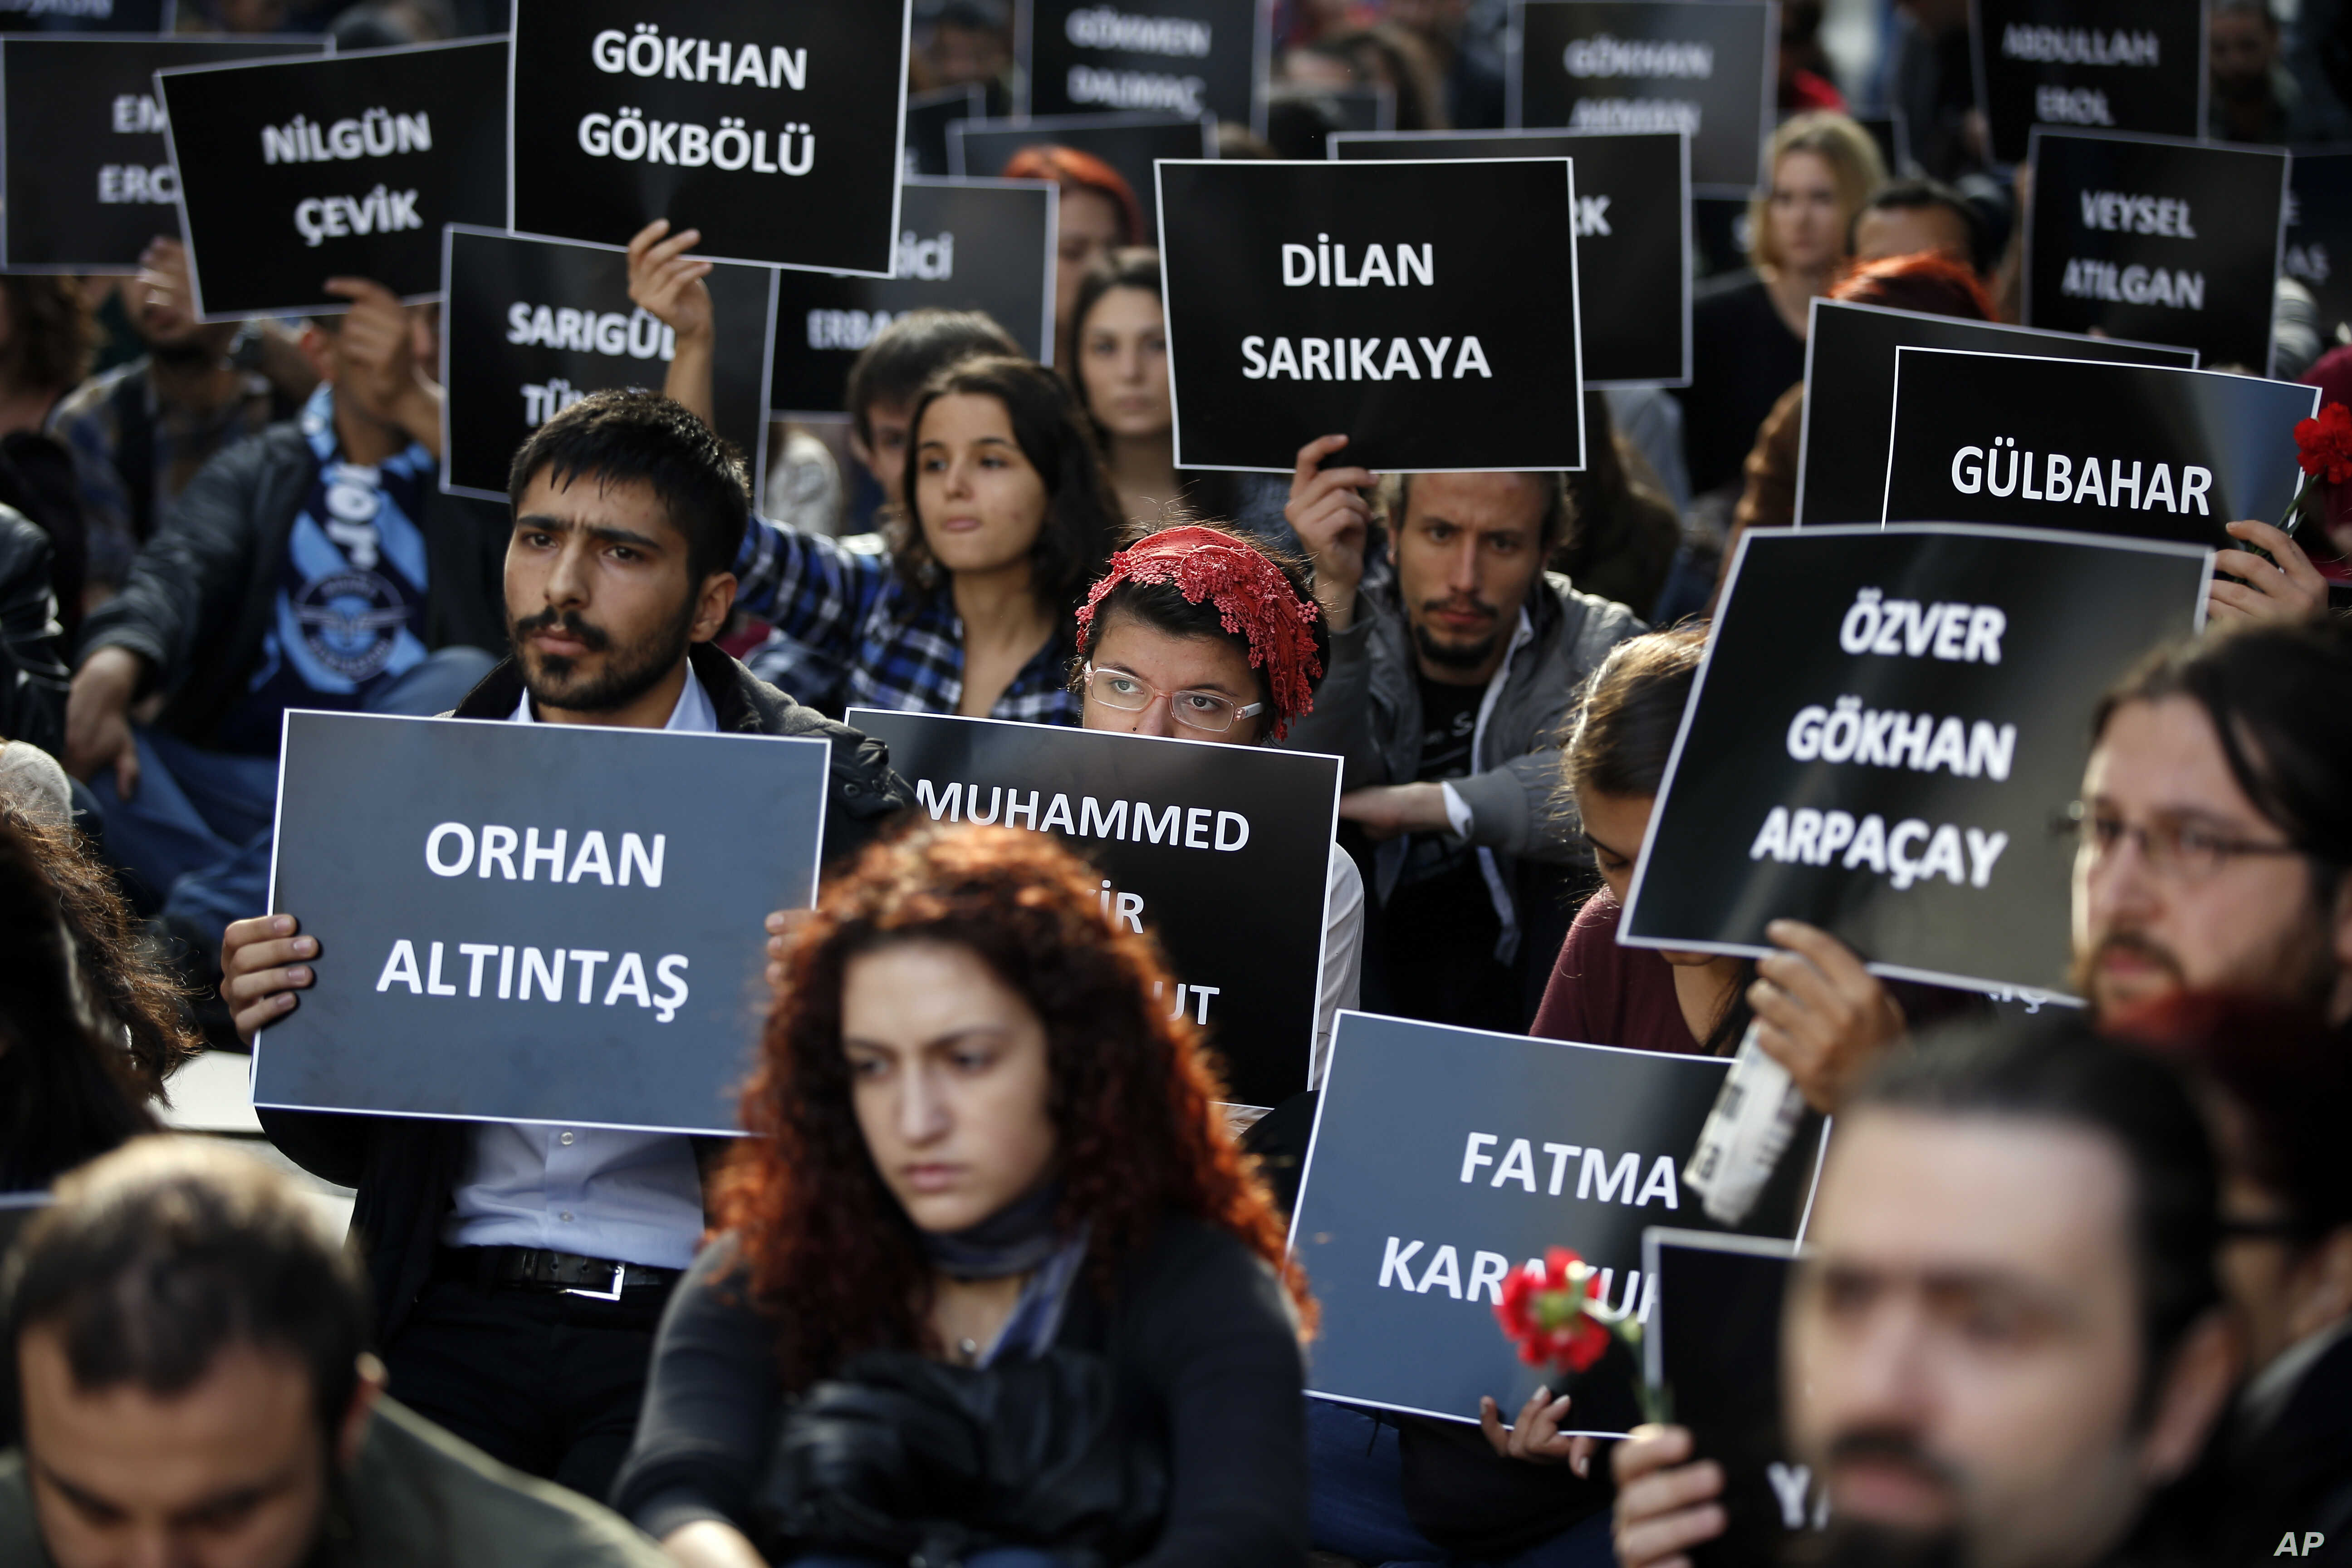 Students of Ankara University hold the placards with the names of those killed in the Oct. 10 deadly explosions in Ankara, during a sit-in protest in Turkey's capital city, Oct. 13, 2015.